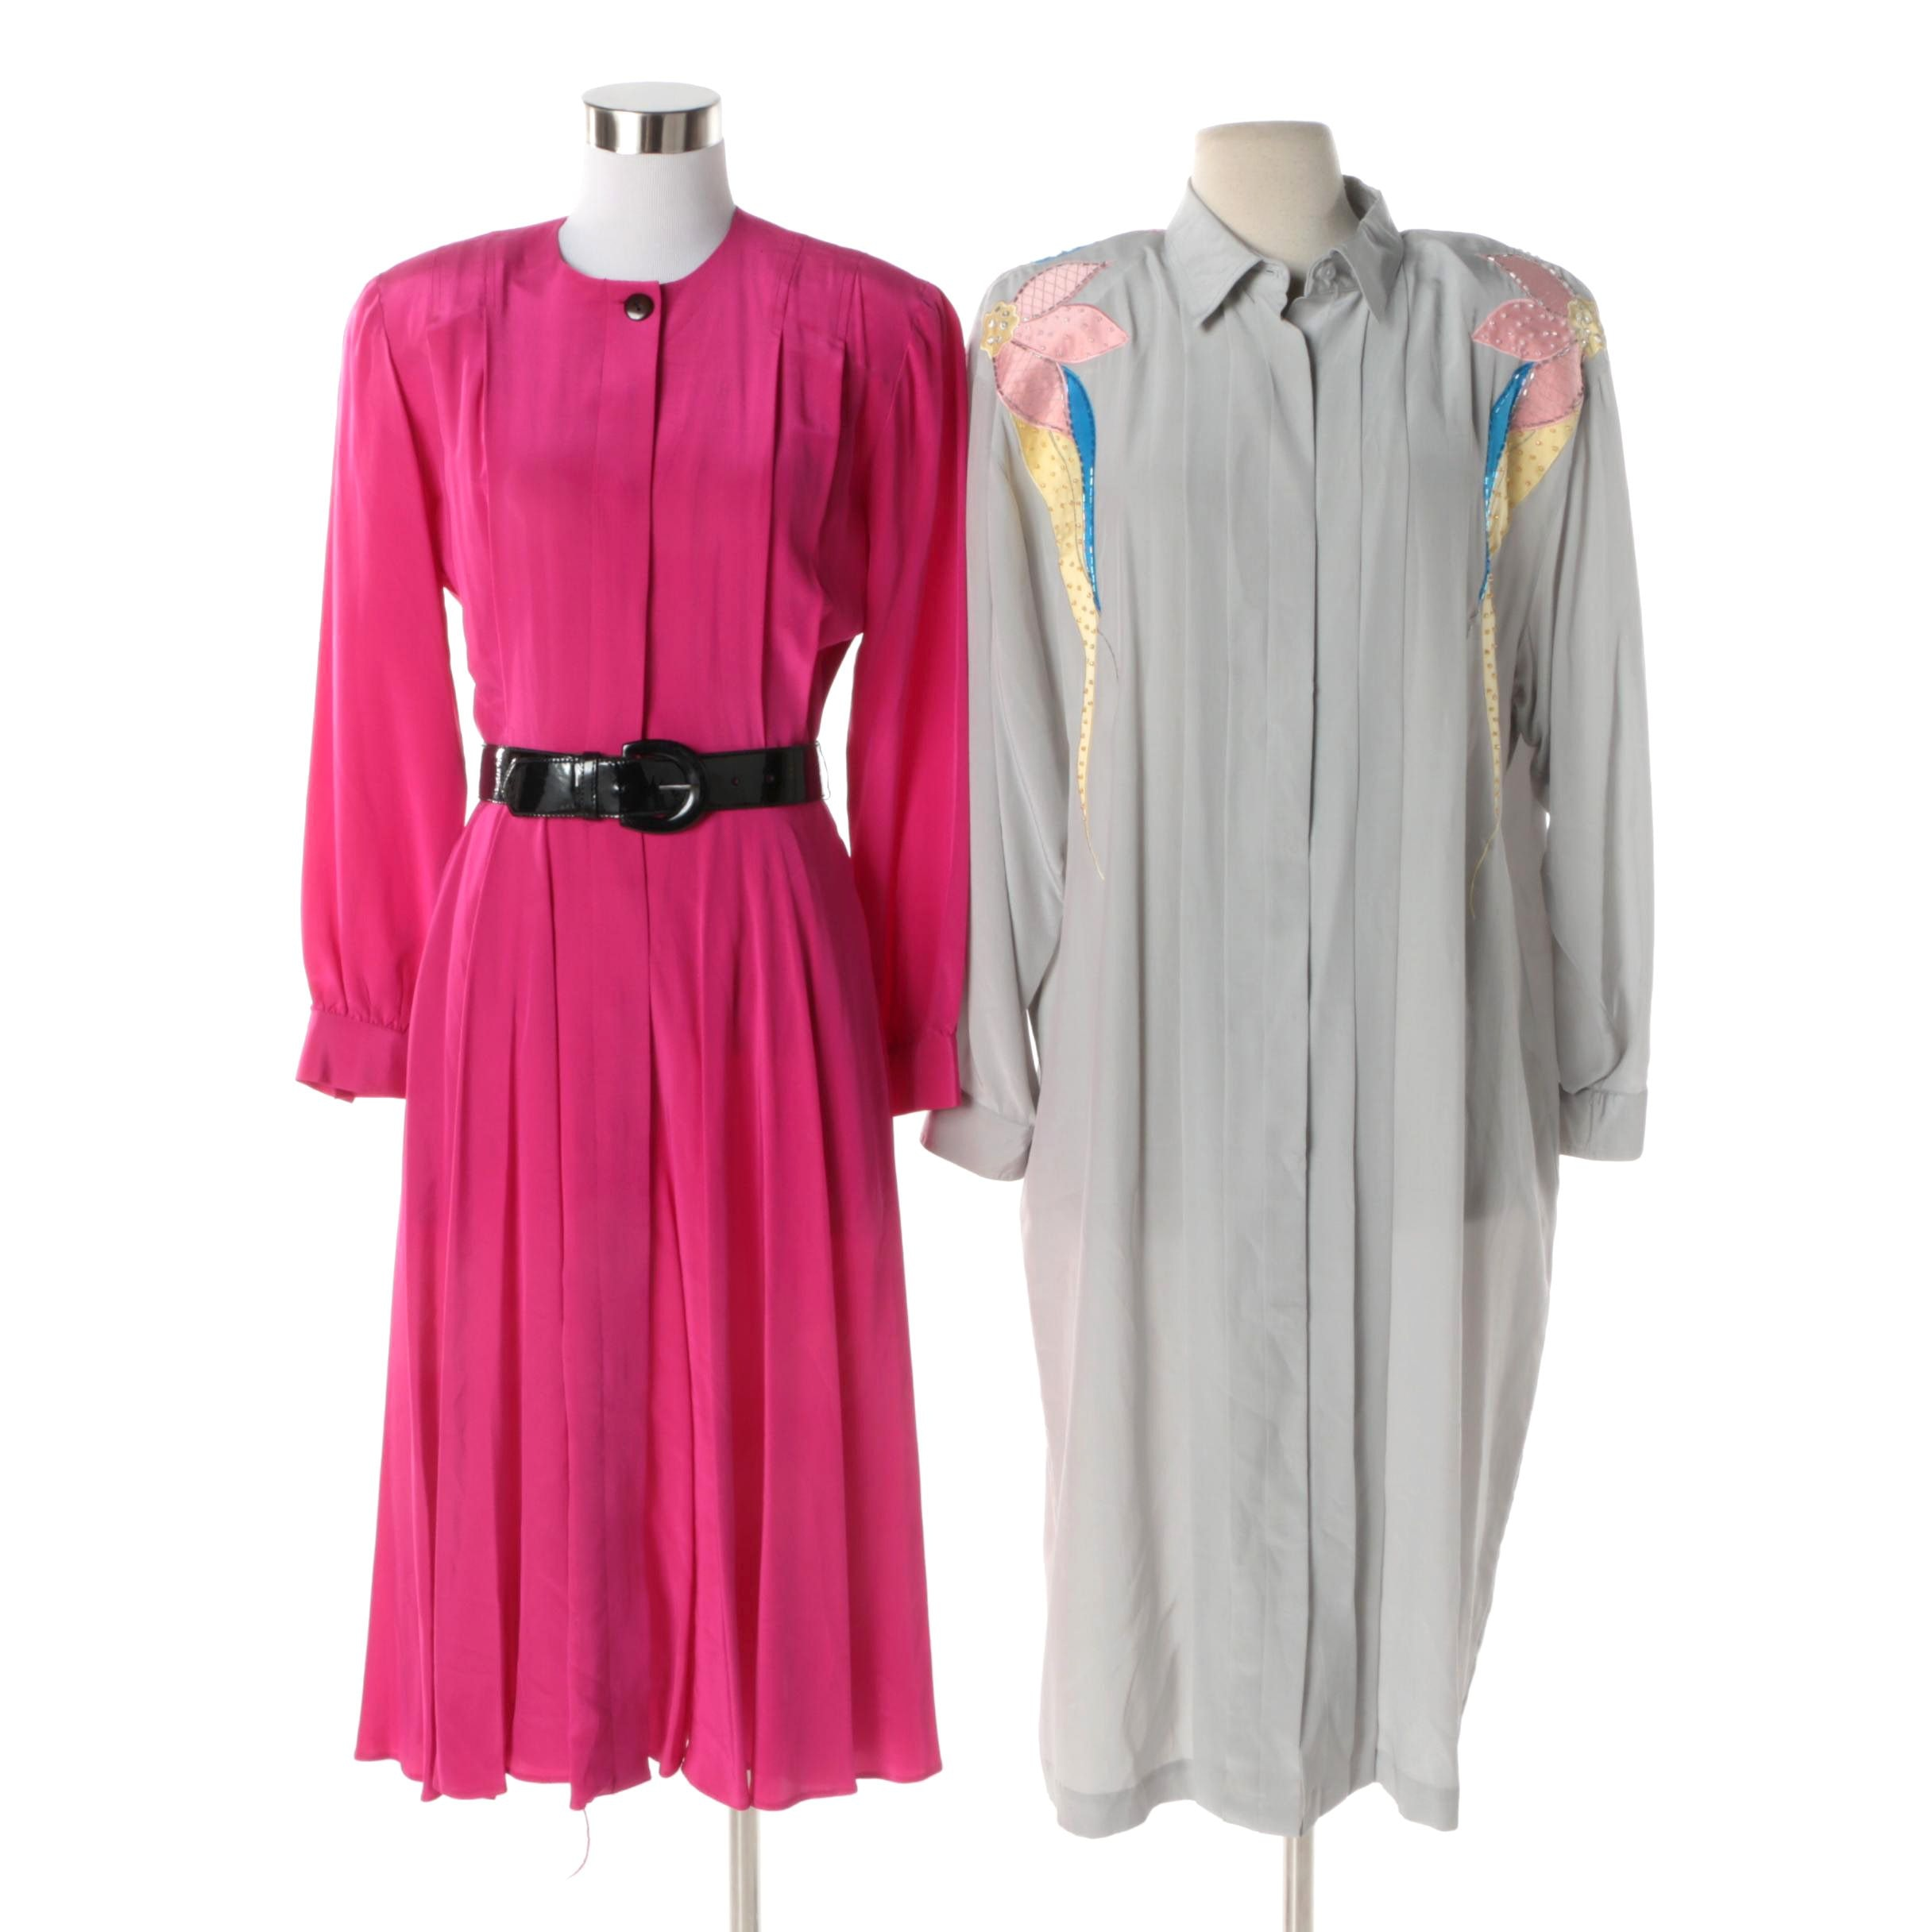 Women's Circa 1990s Aseret and Liz Claiborne Silk Dresses